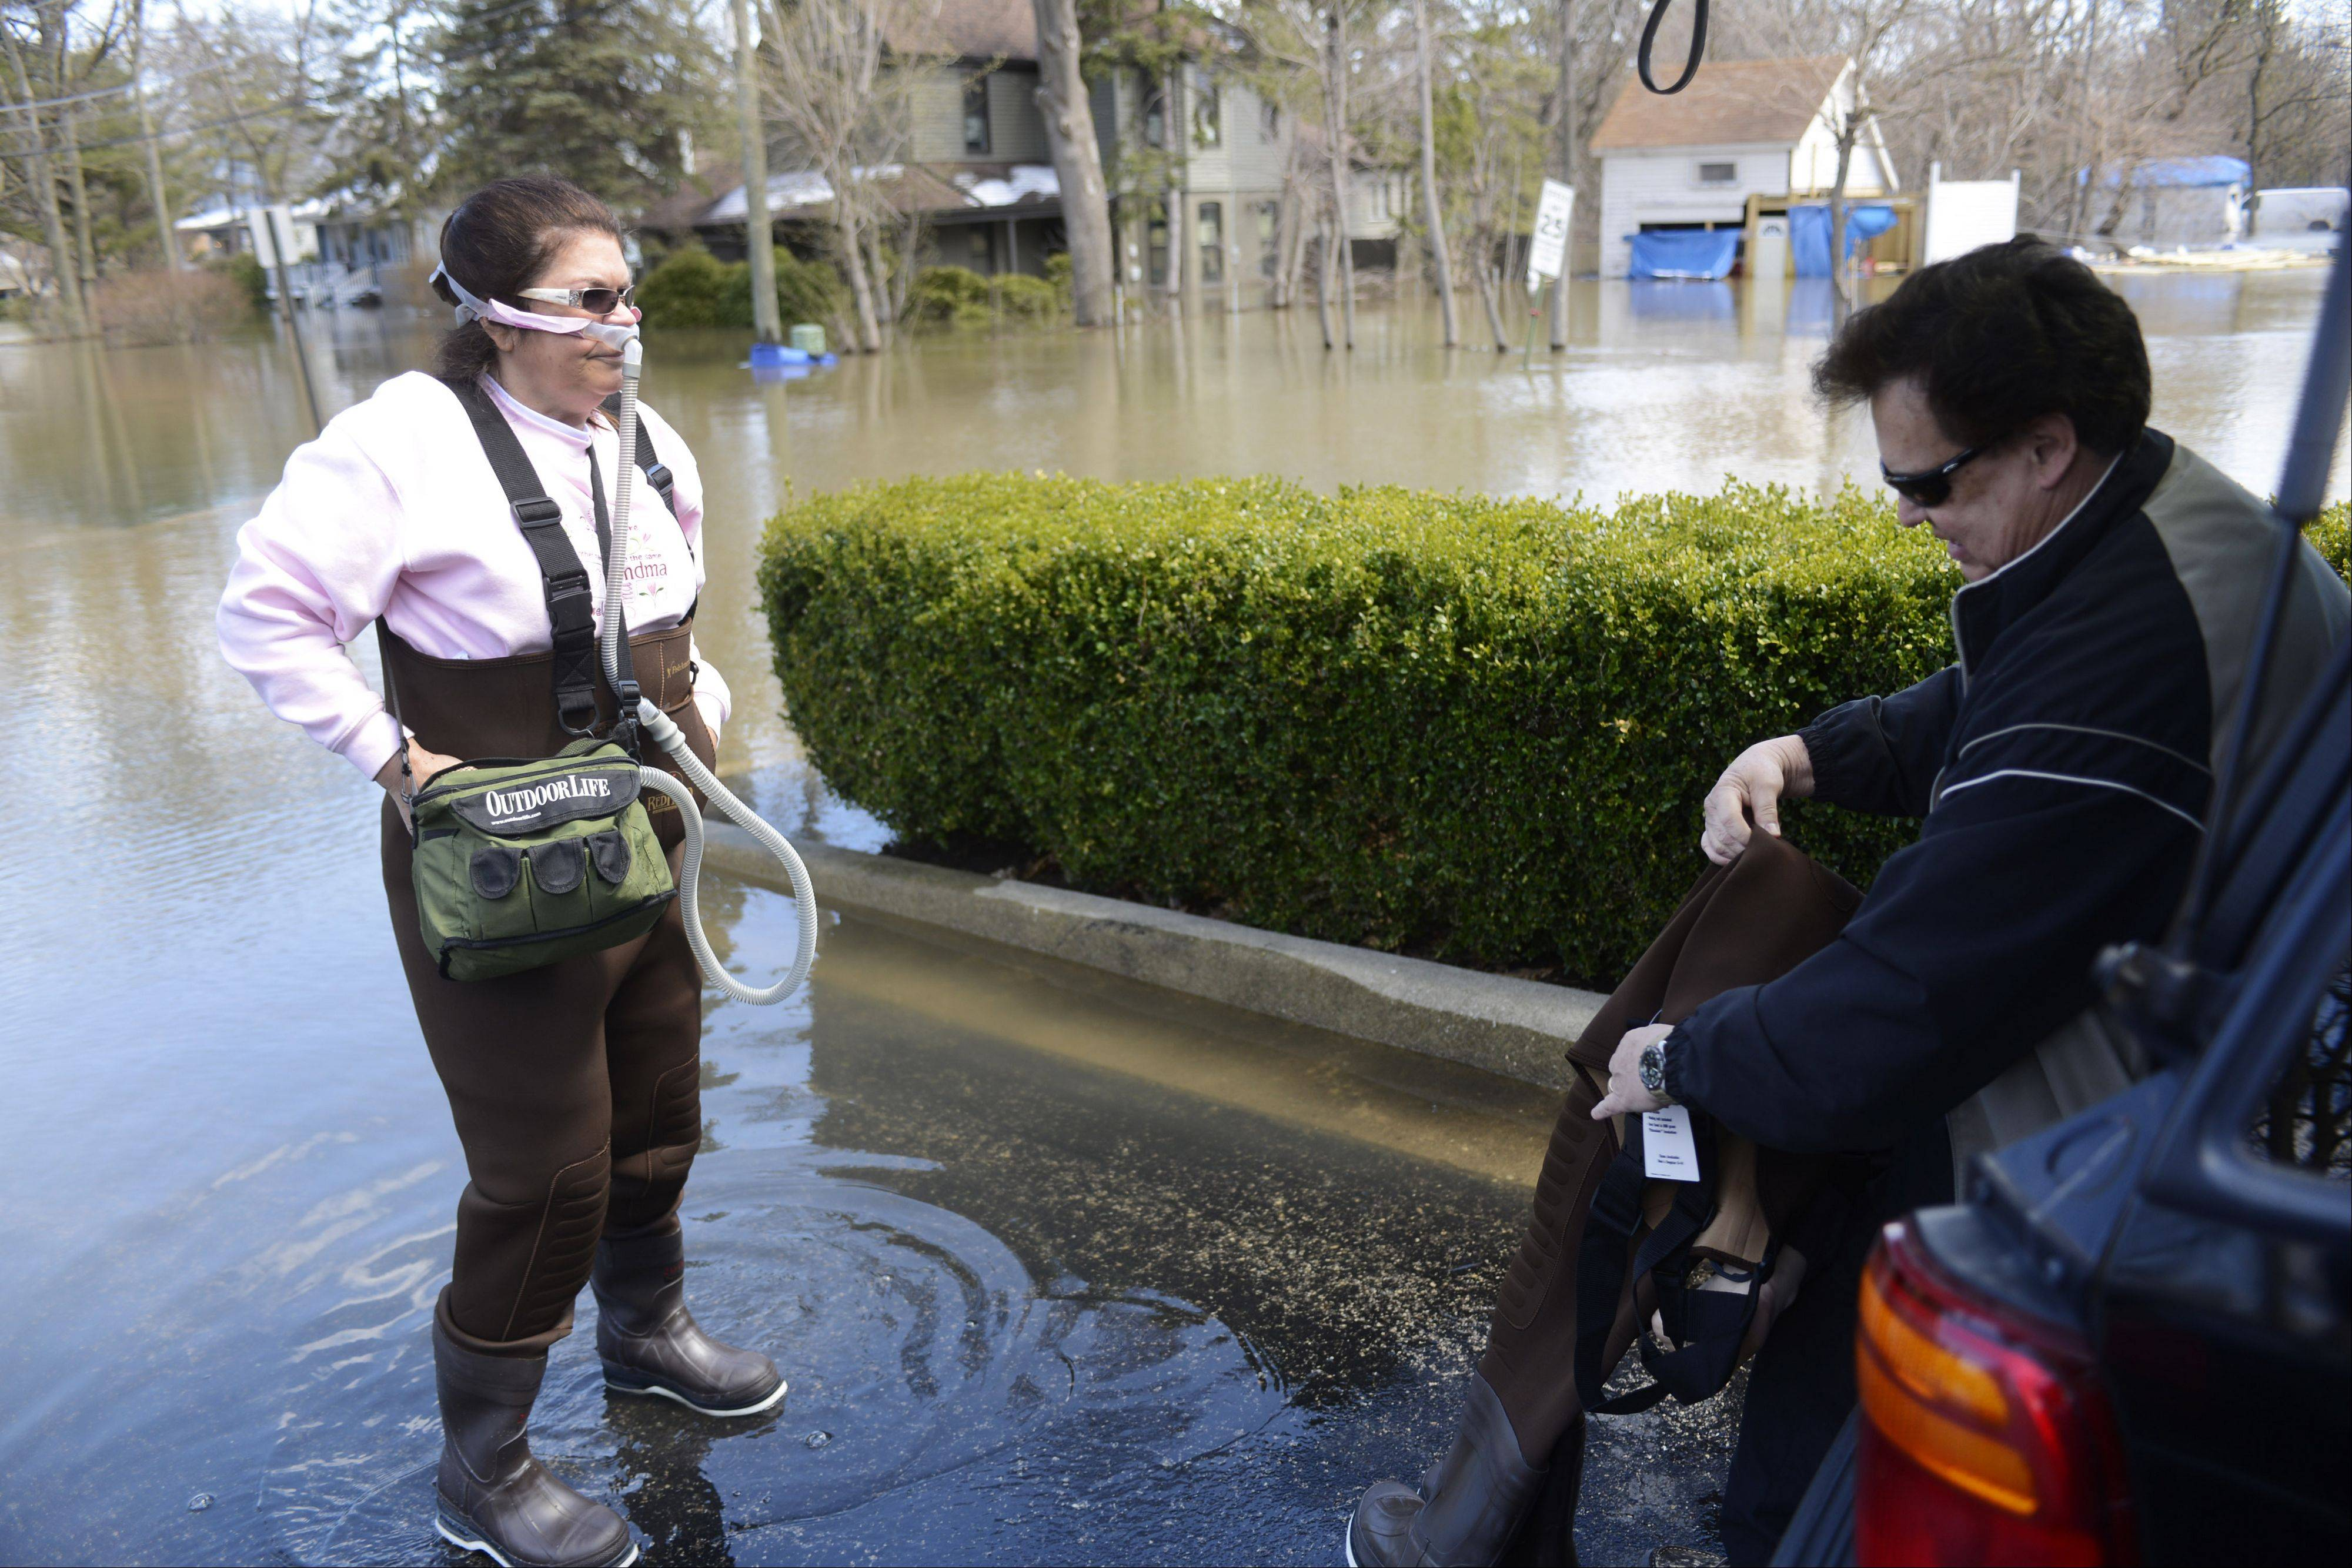 Sherrie Borg, who is afflicted with a chronic, life-threatening lung disease, waits for her husband Walter to get into a set of waders so they can walk to their home on Big Bend in Des Plaines Saturday. The couple had to go all the way to Gurnee to the Bass Pro Shops for the waders.